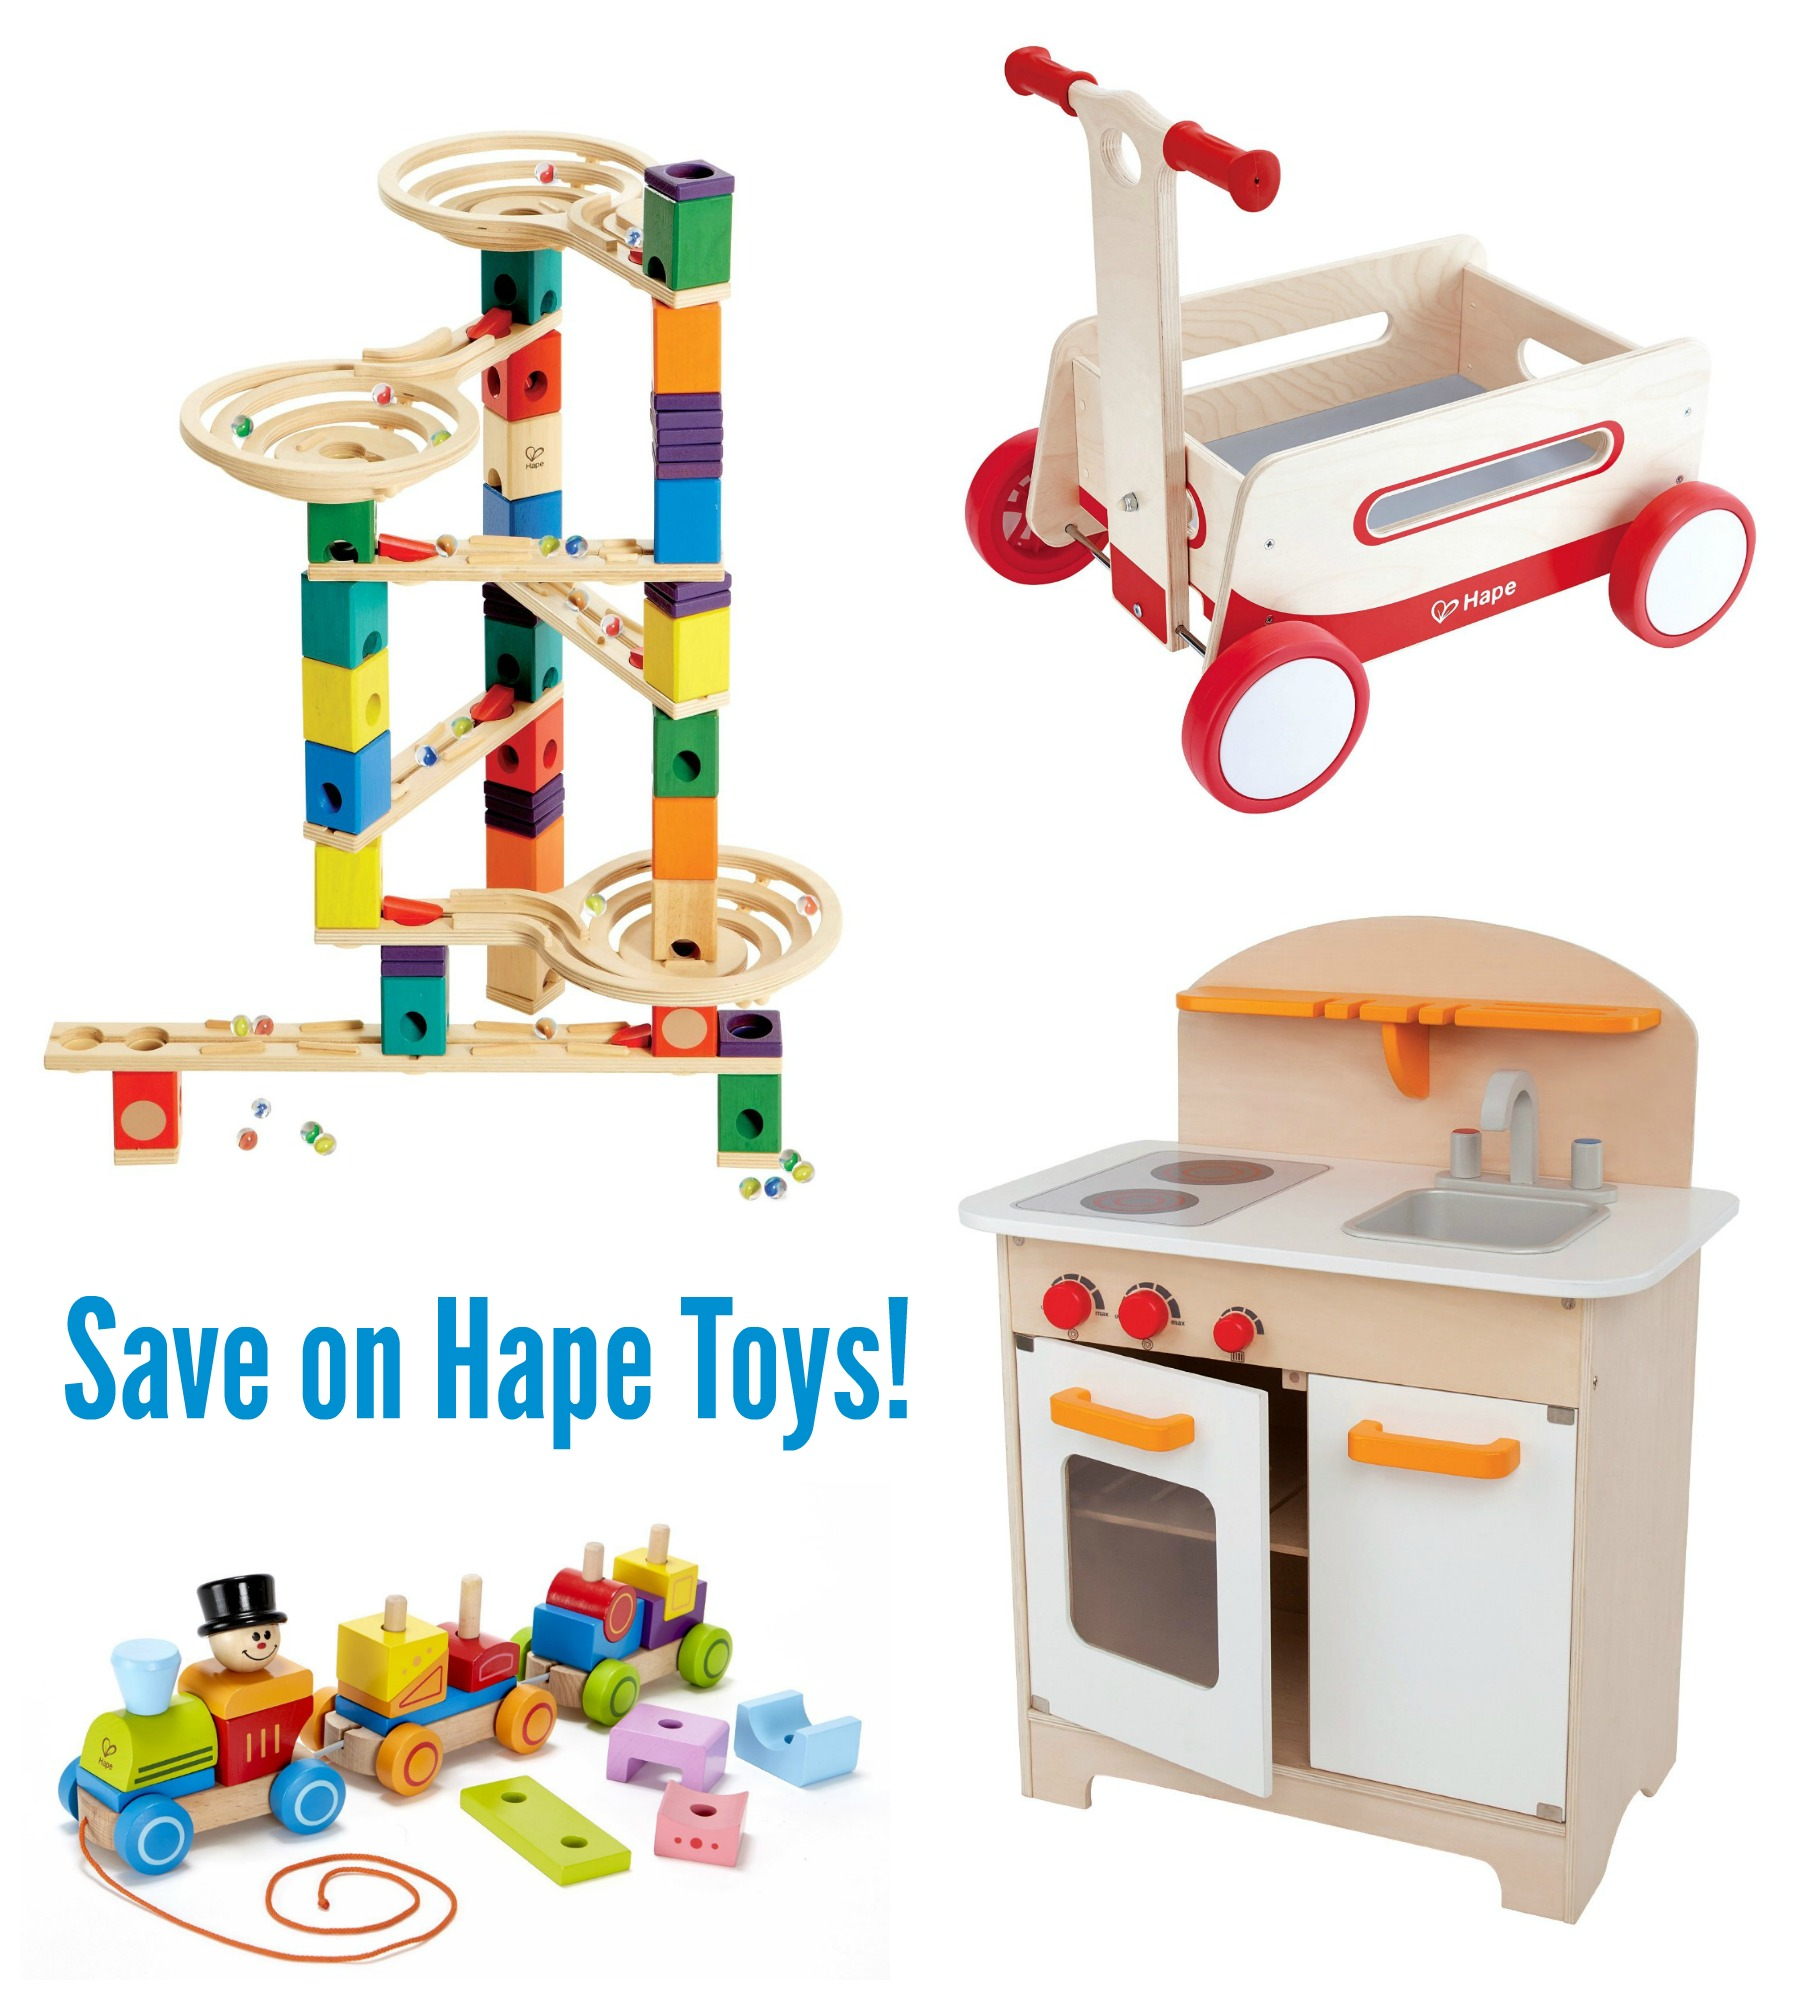 Save on Hape Toys